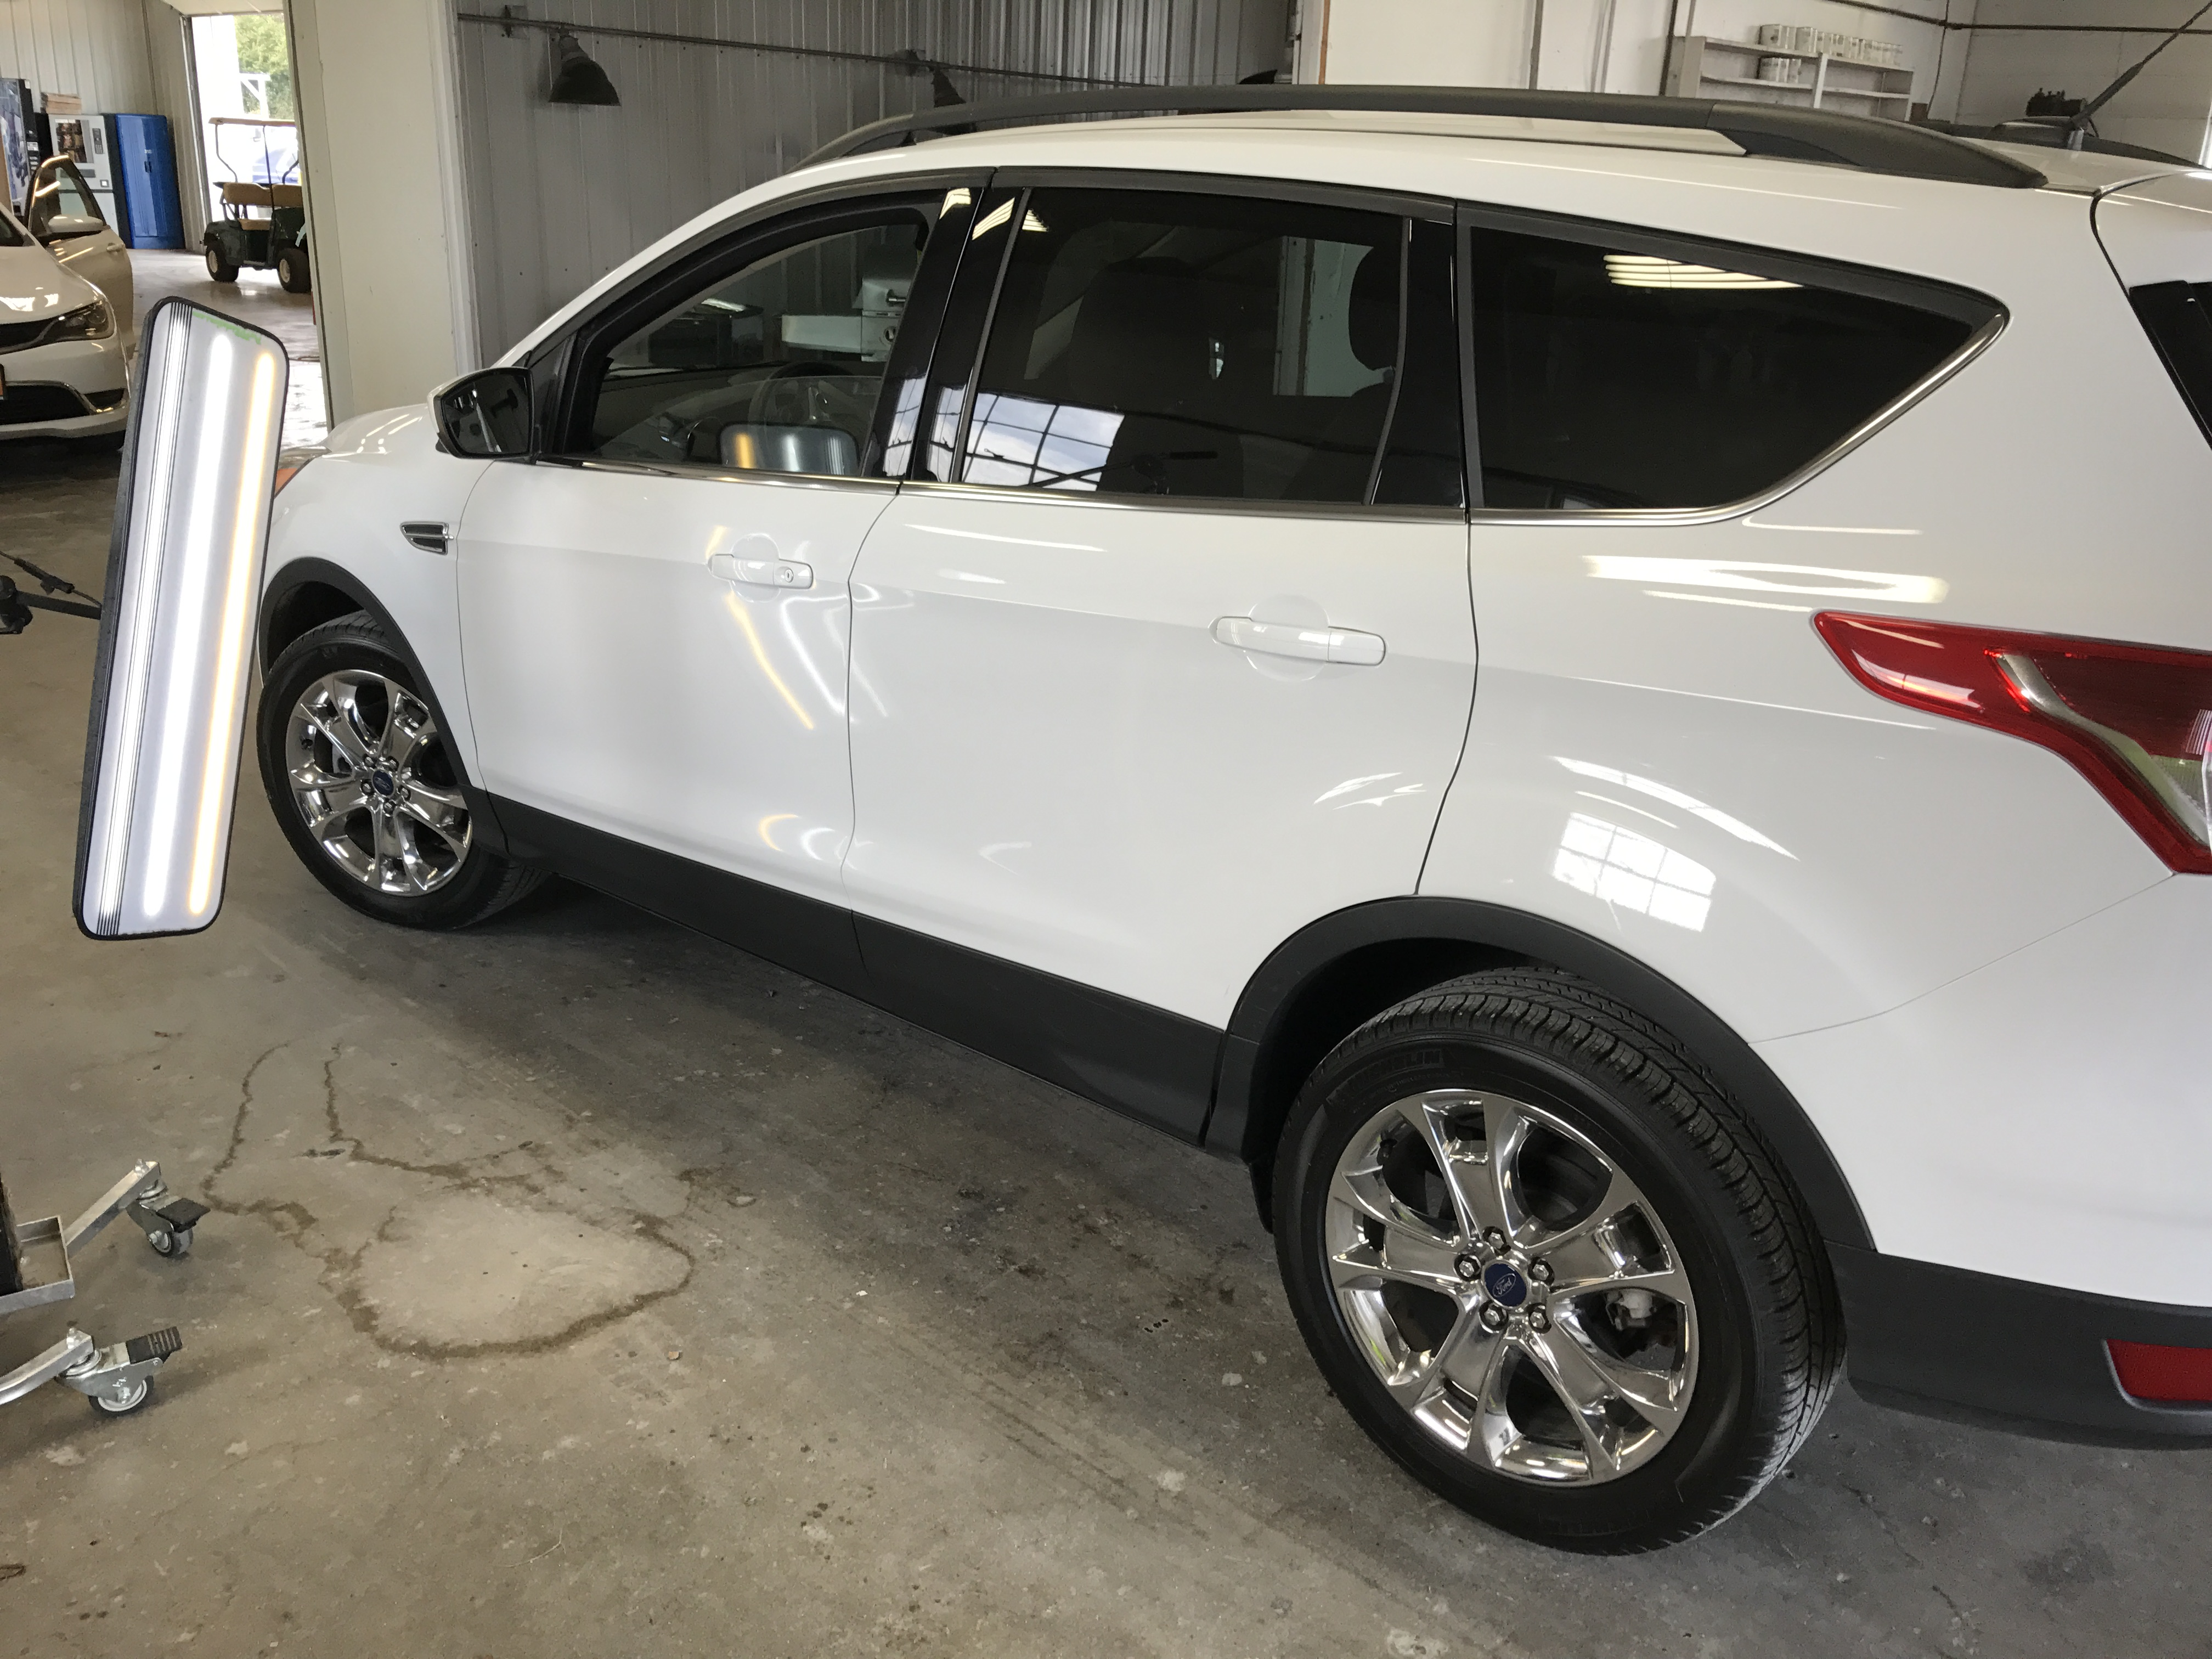 2016 Ford Escape dent removal on the drivers door, in Pana IL, Springfield IL, we are all set up and ready to make these dents disappear.